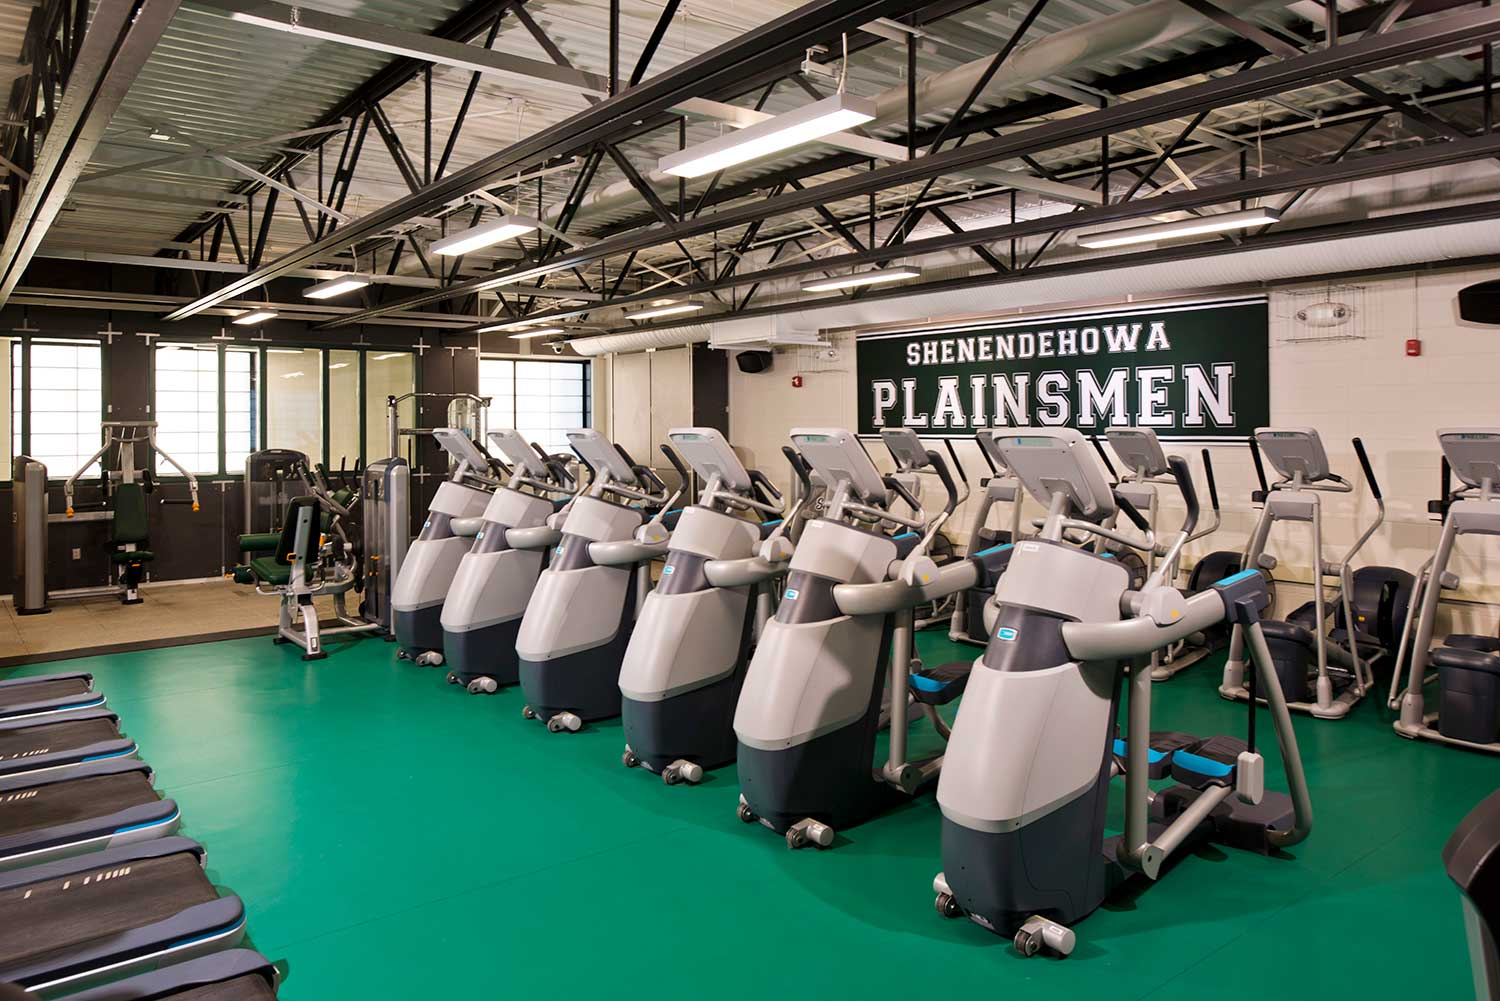 The fitness center Mosaic designed for Shenendehowa is arranged for multi-purpose and community use.